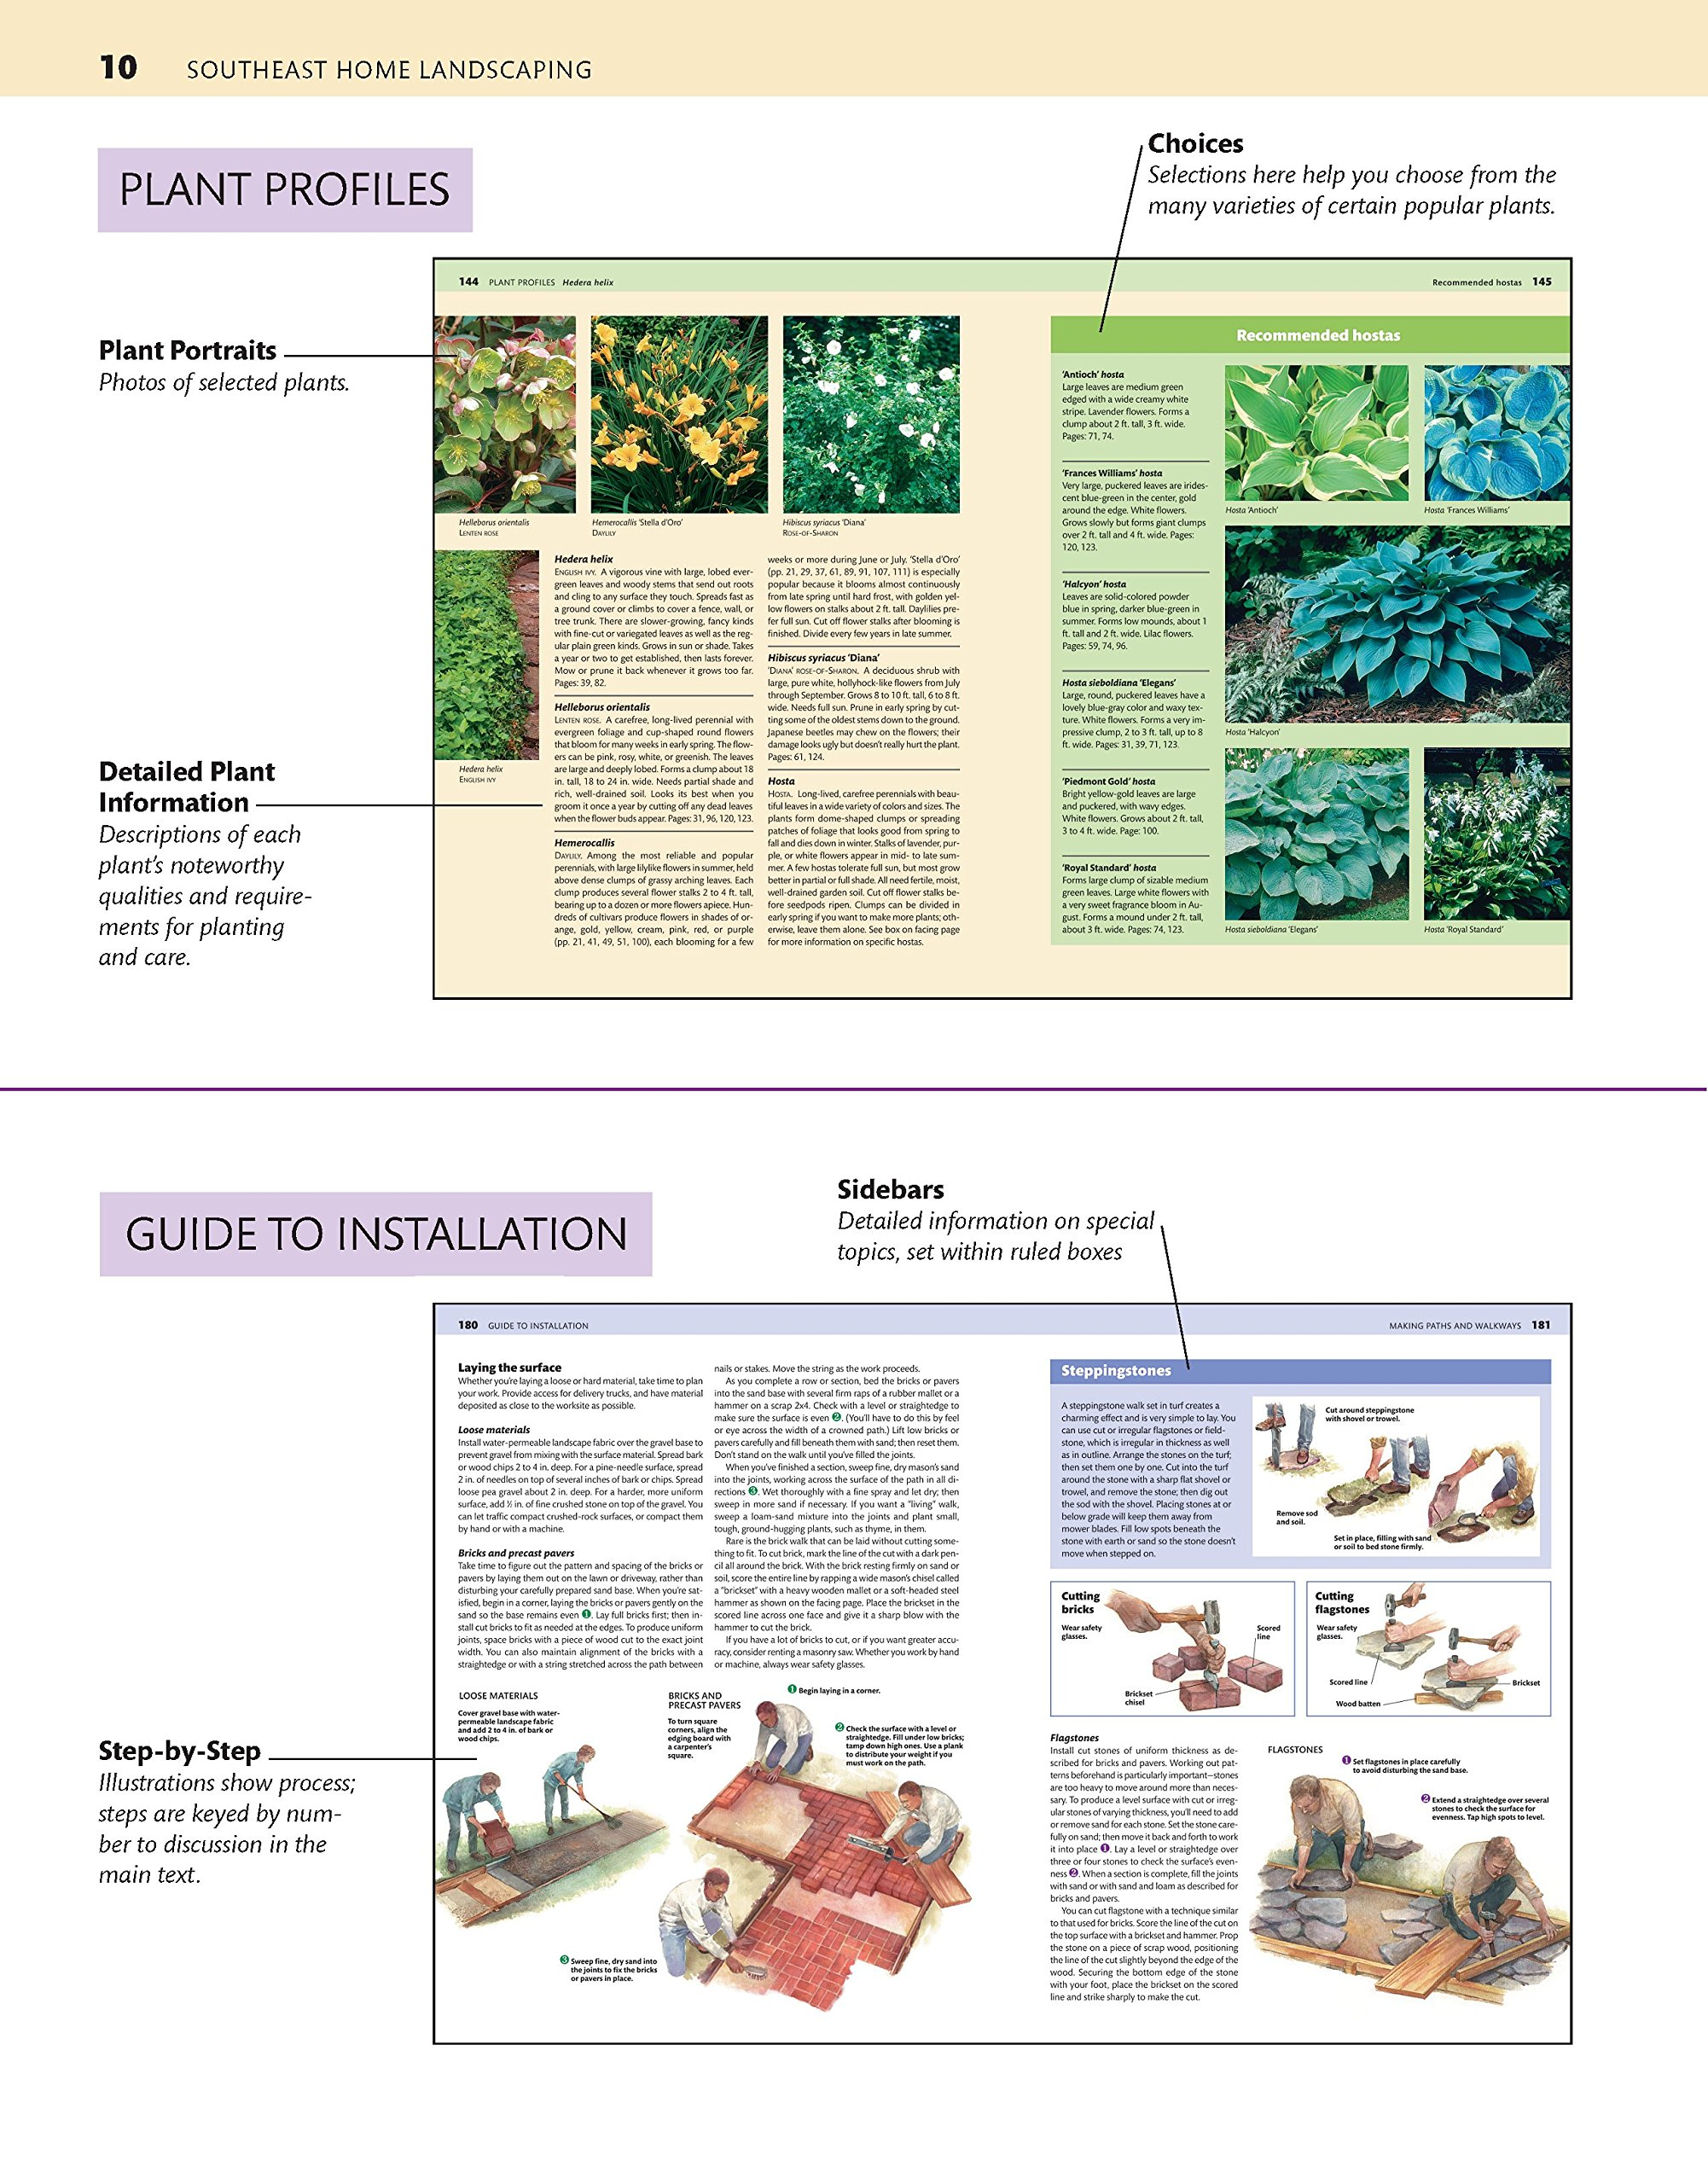 Southeast home landscaping 3rd edition creative homeowner 54 southeast home landscaping 3rd edition creative homeowner 54 landscape designs with over 200 plants flowers best suited to al ar fl ga ky la ms mightylinksfo